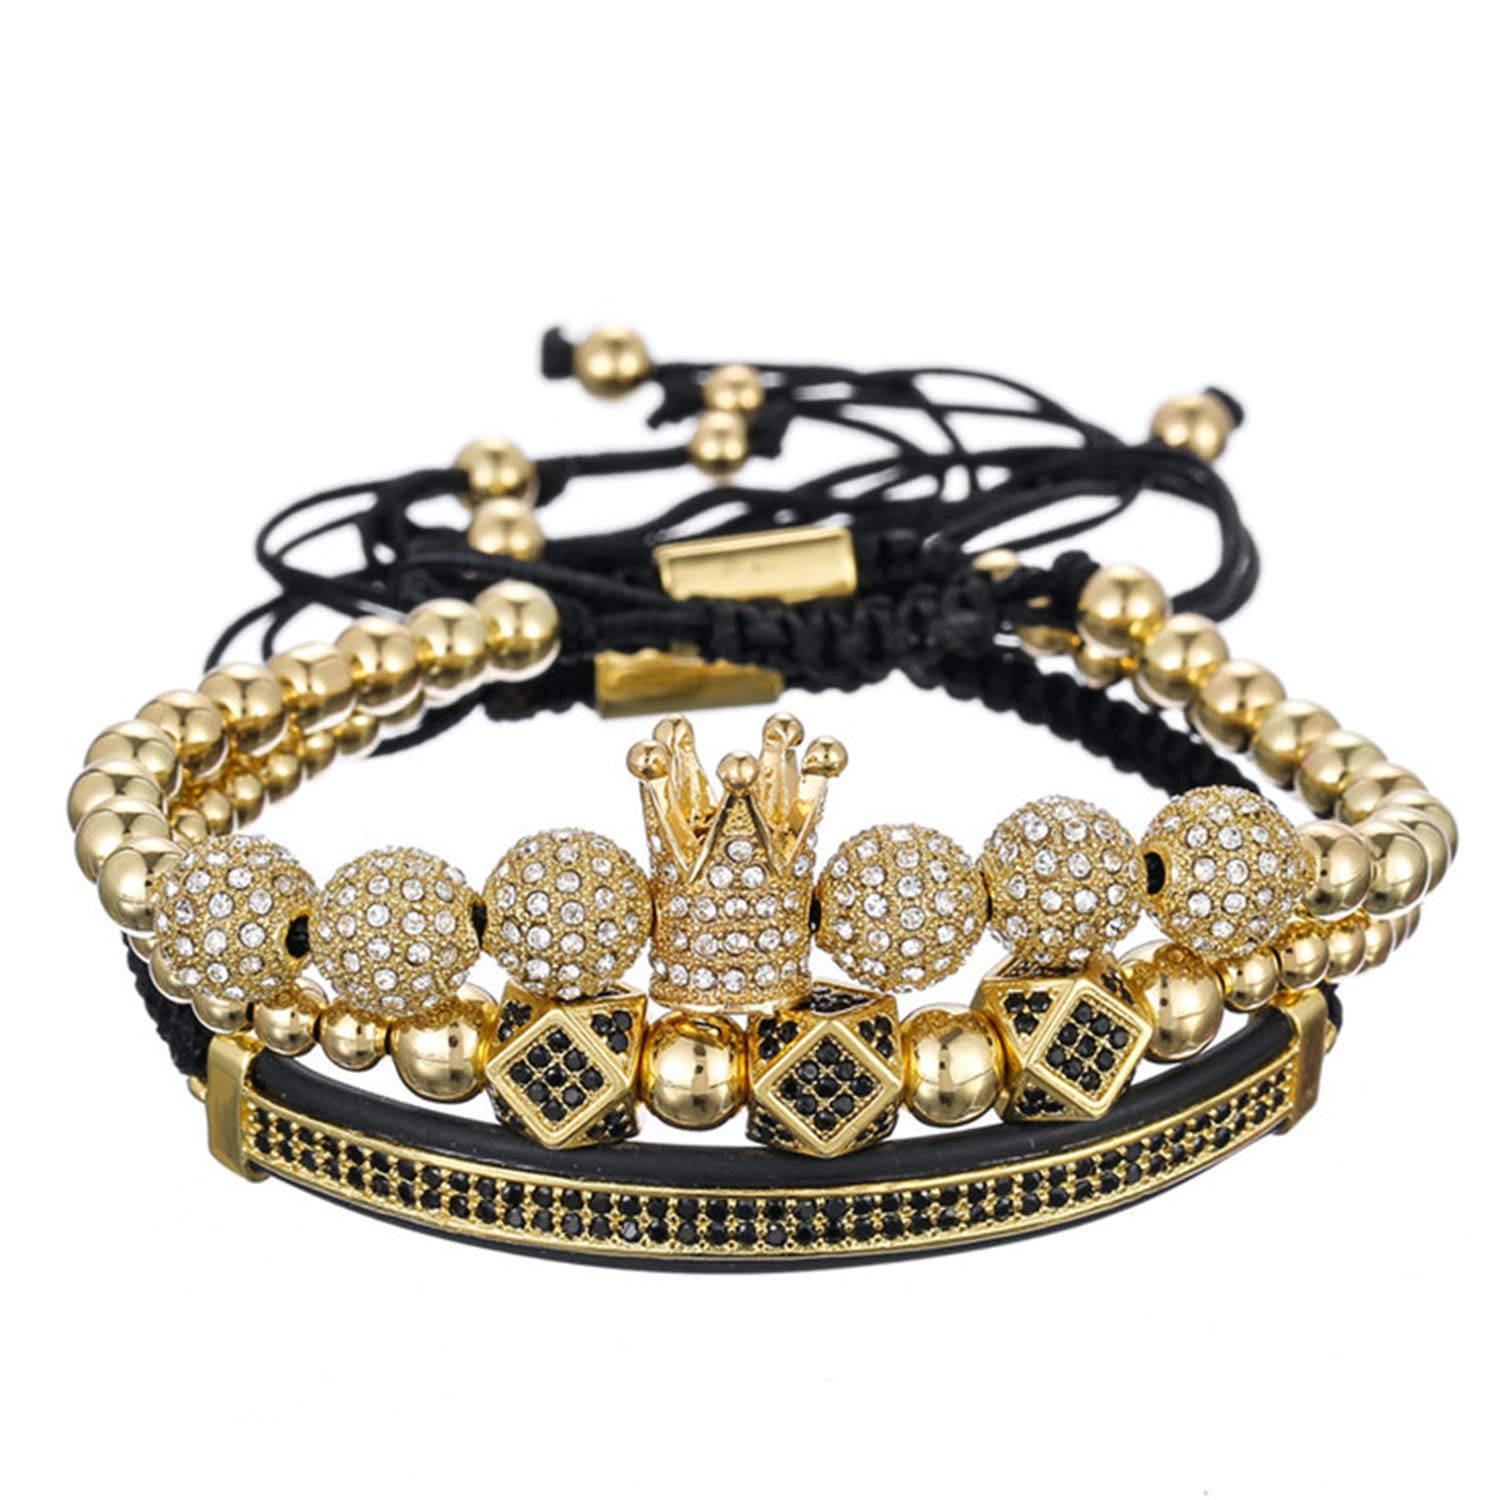 WASOLIE 3 Pcs Set Luxury CZ Crown Braided Copper Bracelets with Micro Pave Cubic Zirconia Beads Pulseira Bangle Charm Jewelry for Women Men